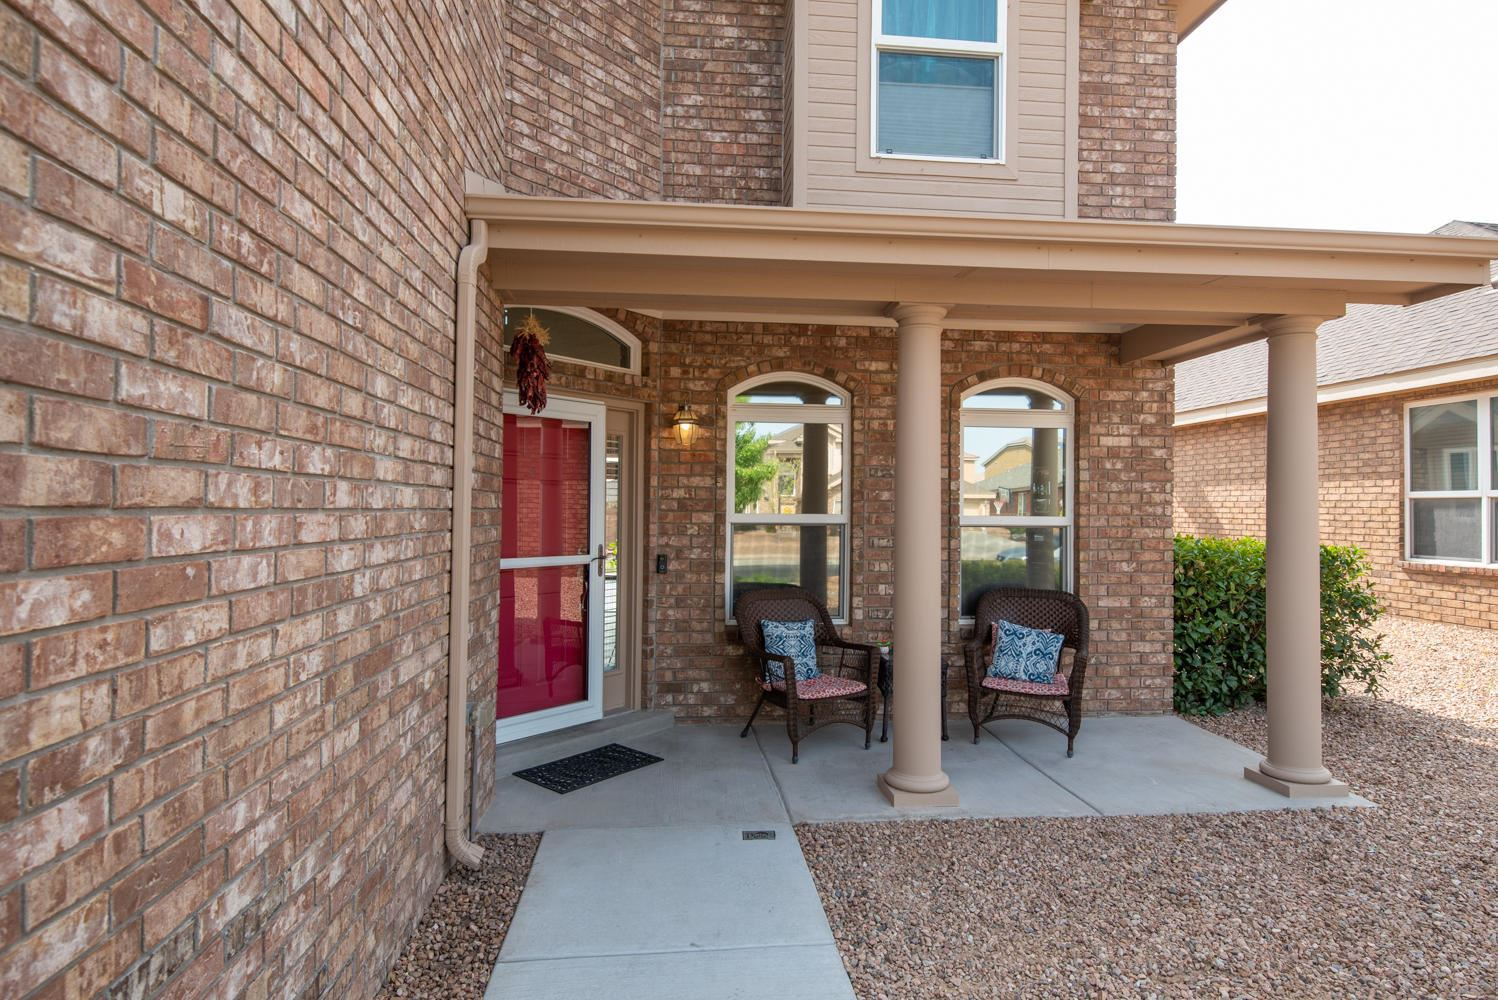 Photo of 2610 CORTE PALOS SE, Rio Rancho, NM 87124 (MLS # 977834)